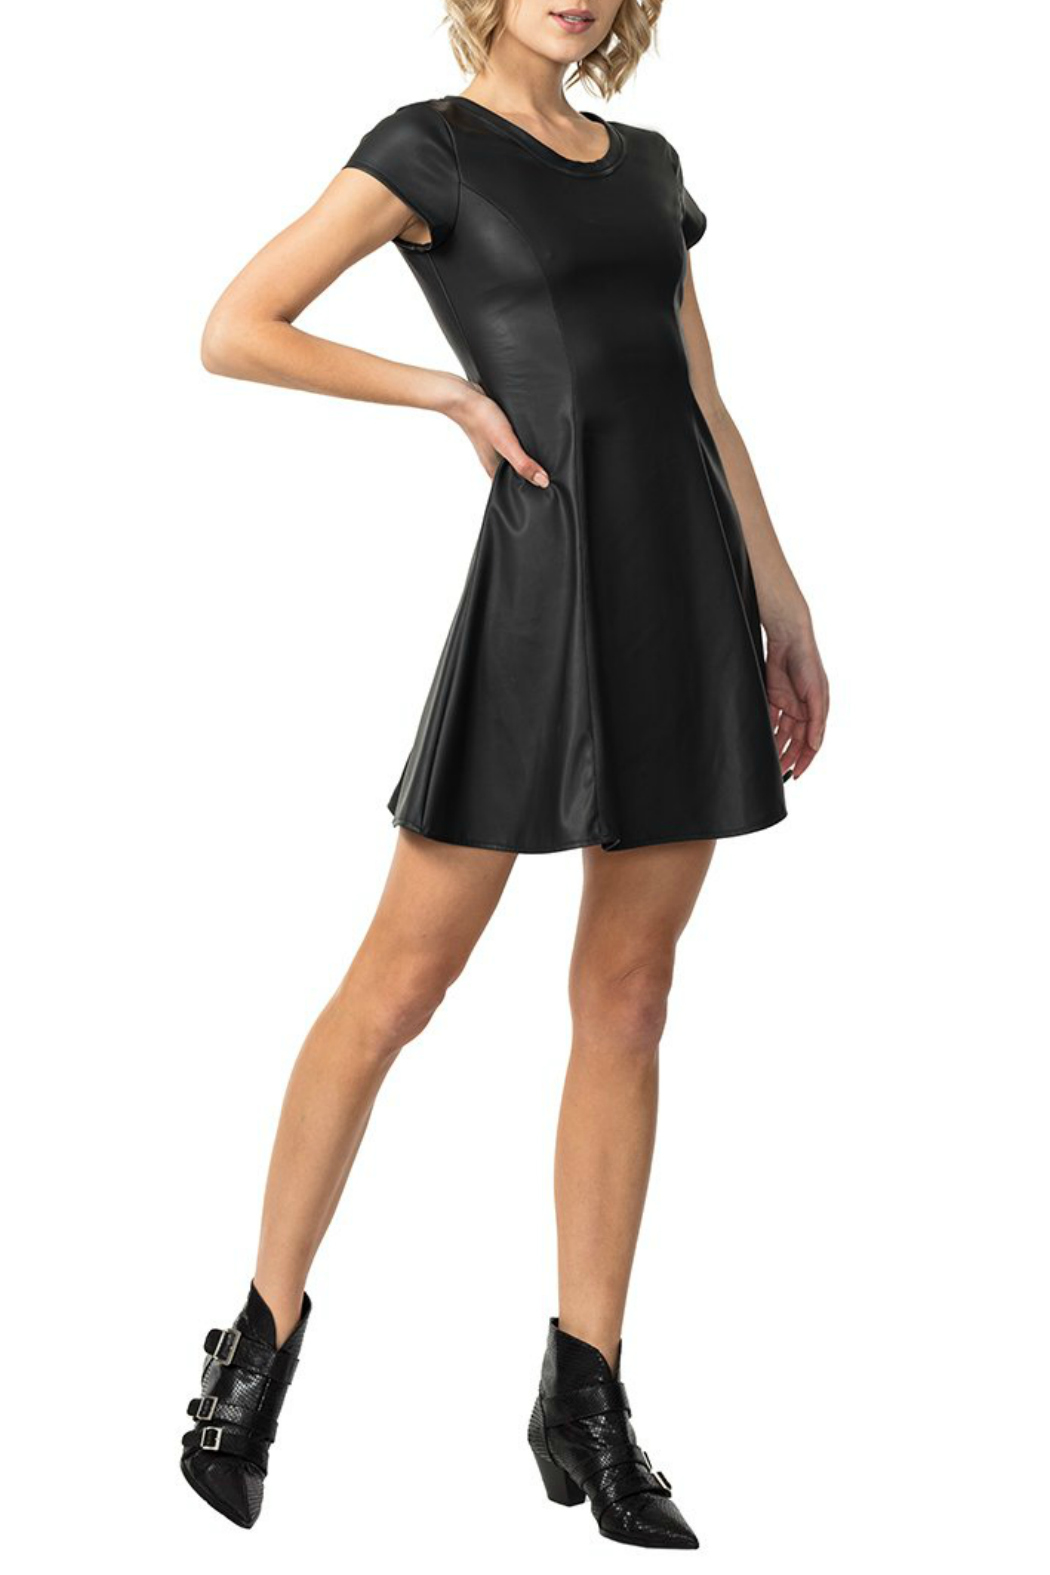 Astars Vegan Leather Black Stretch Dress - Front Cropped Image